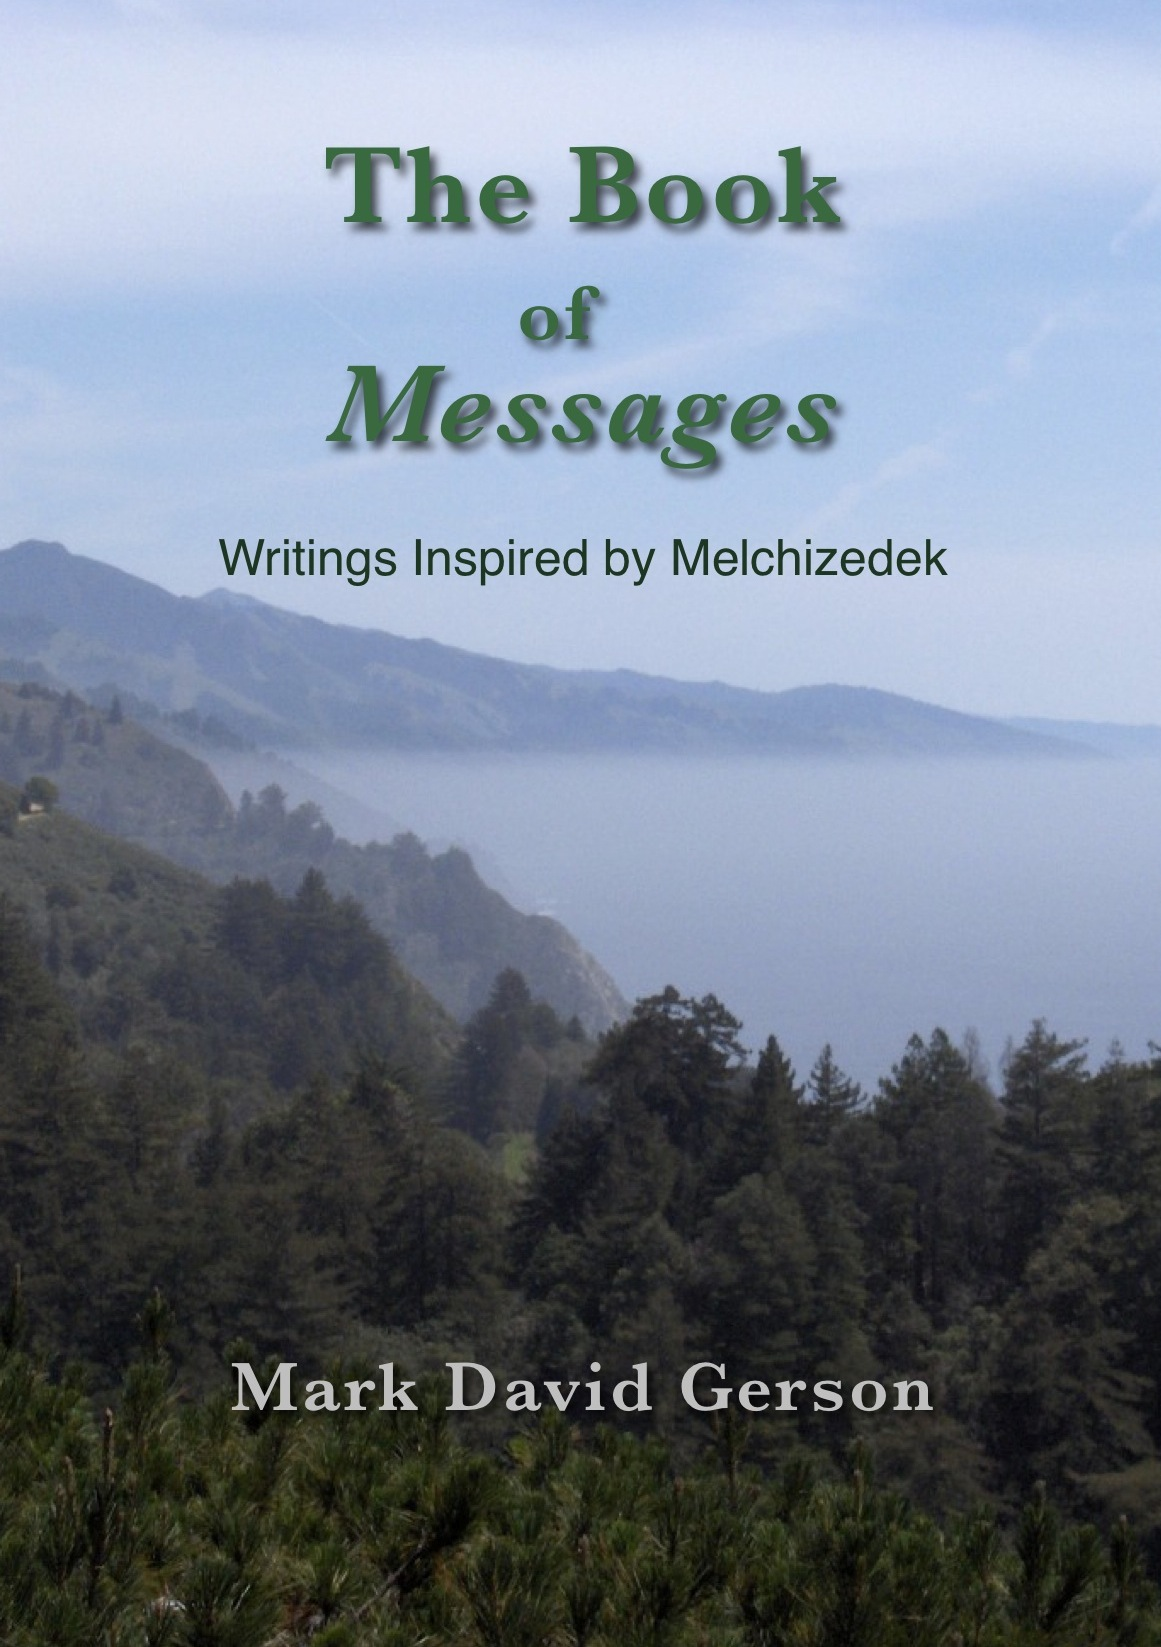 The Book of Messages